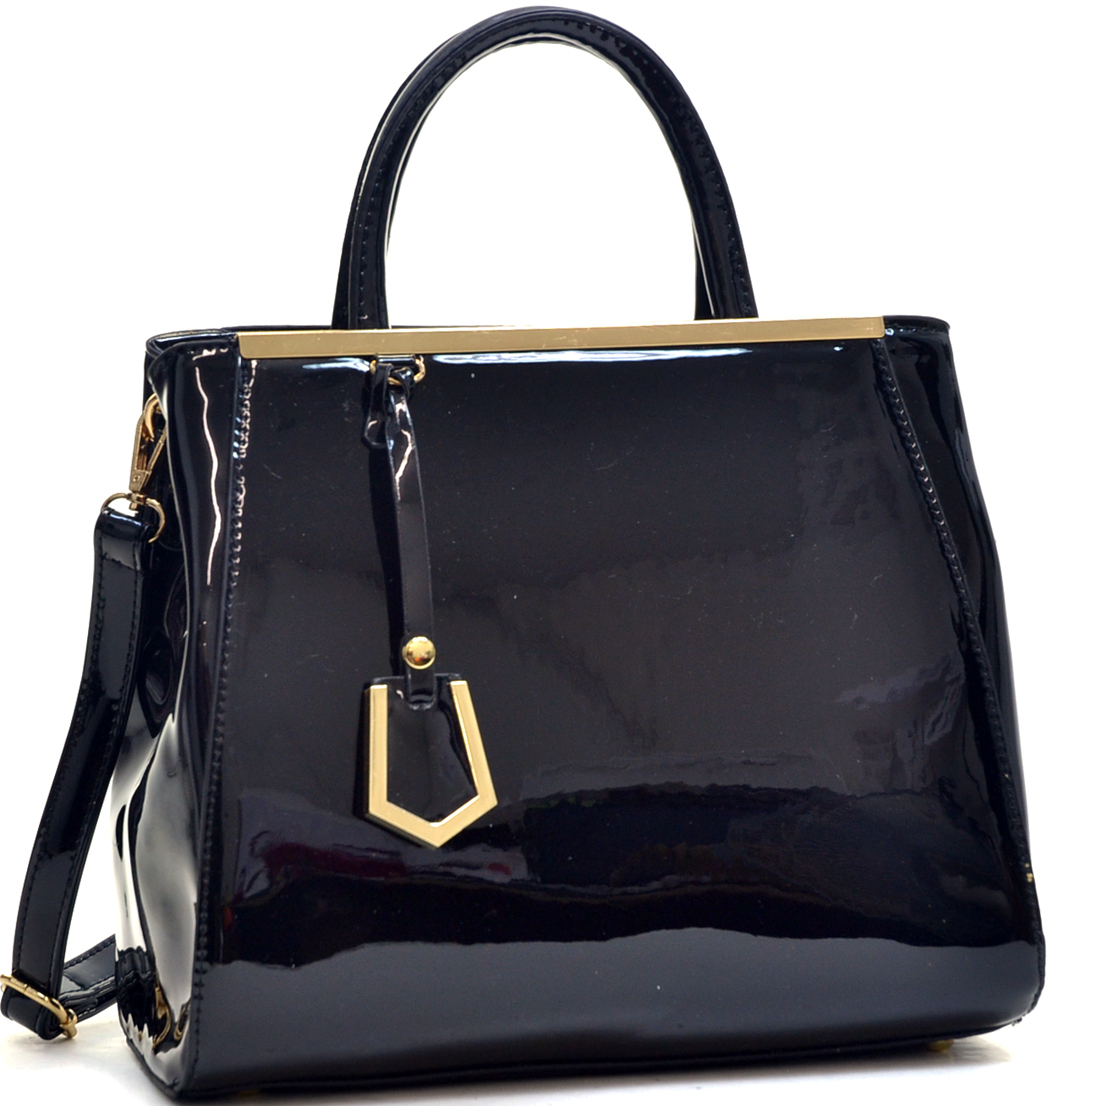 Patent Faux Leather Tote with Gold-Tone Accent